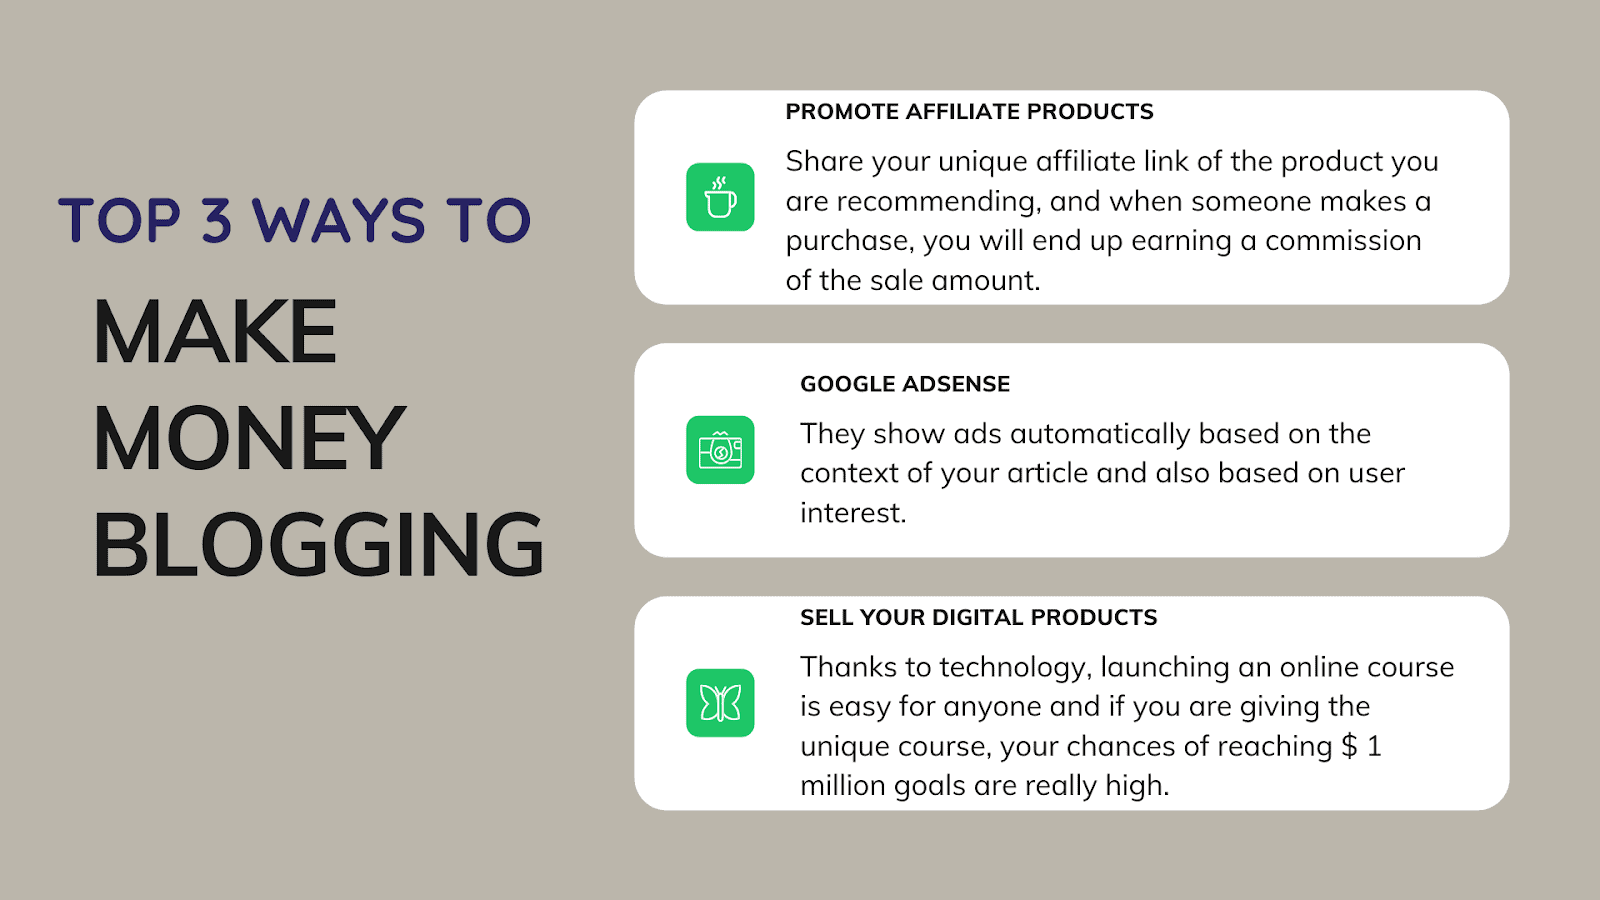 Blooging-earn money by top 3 Ways